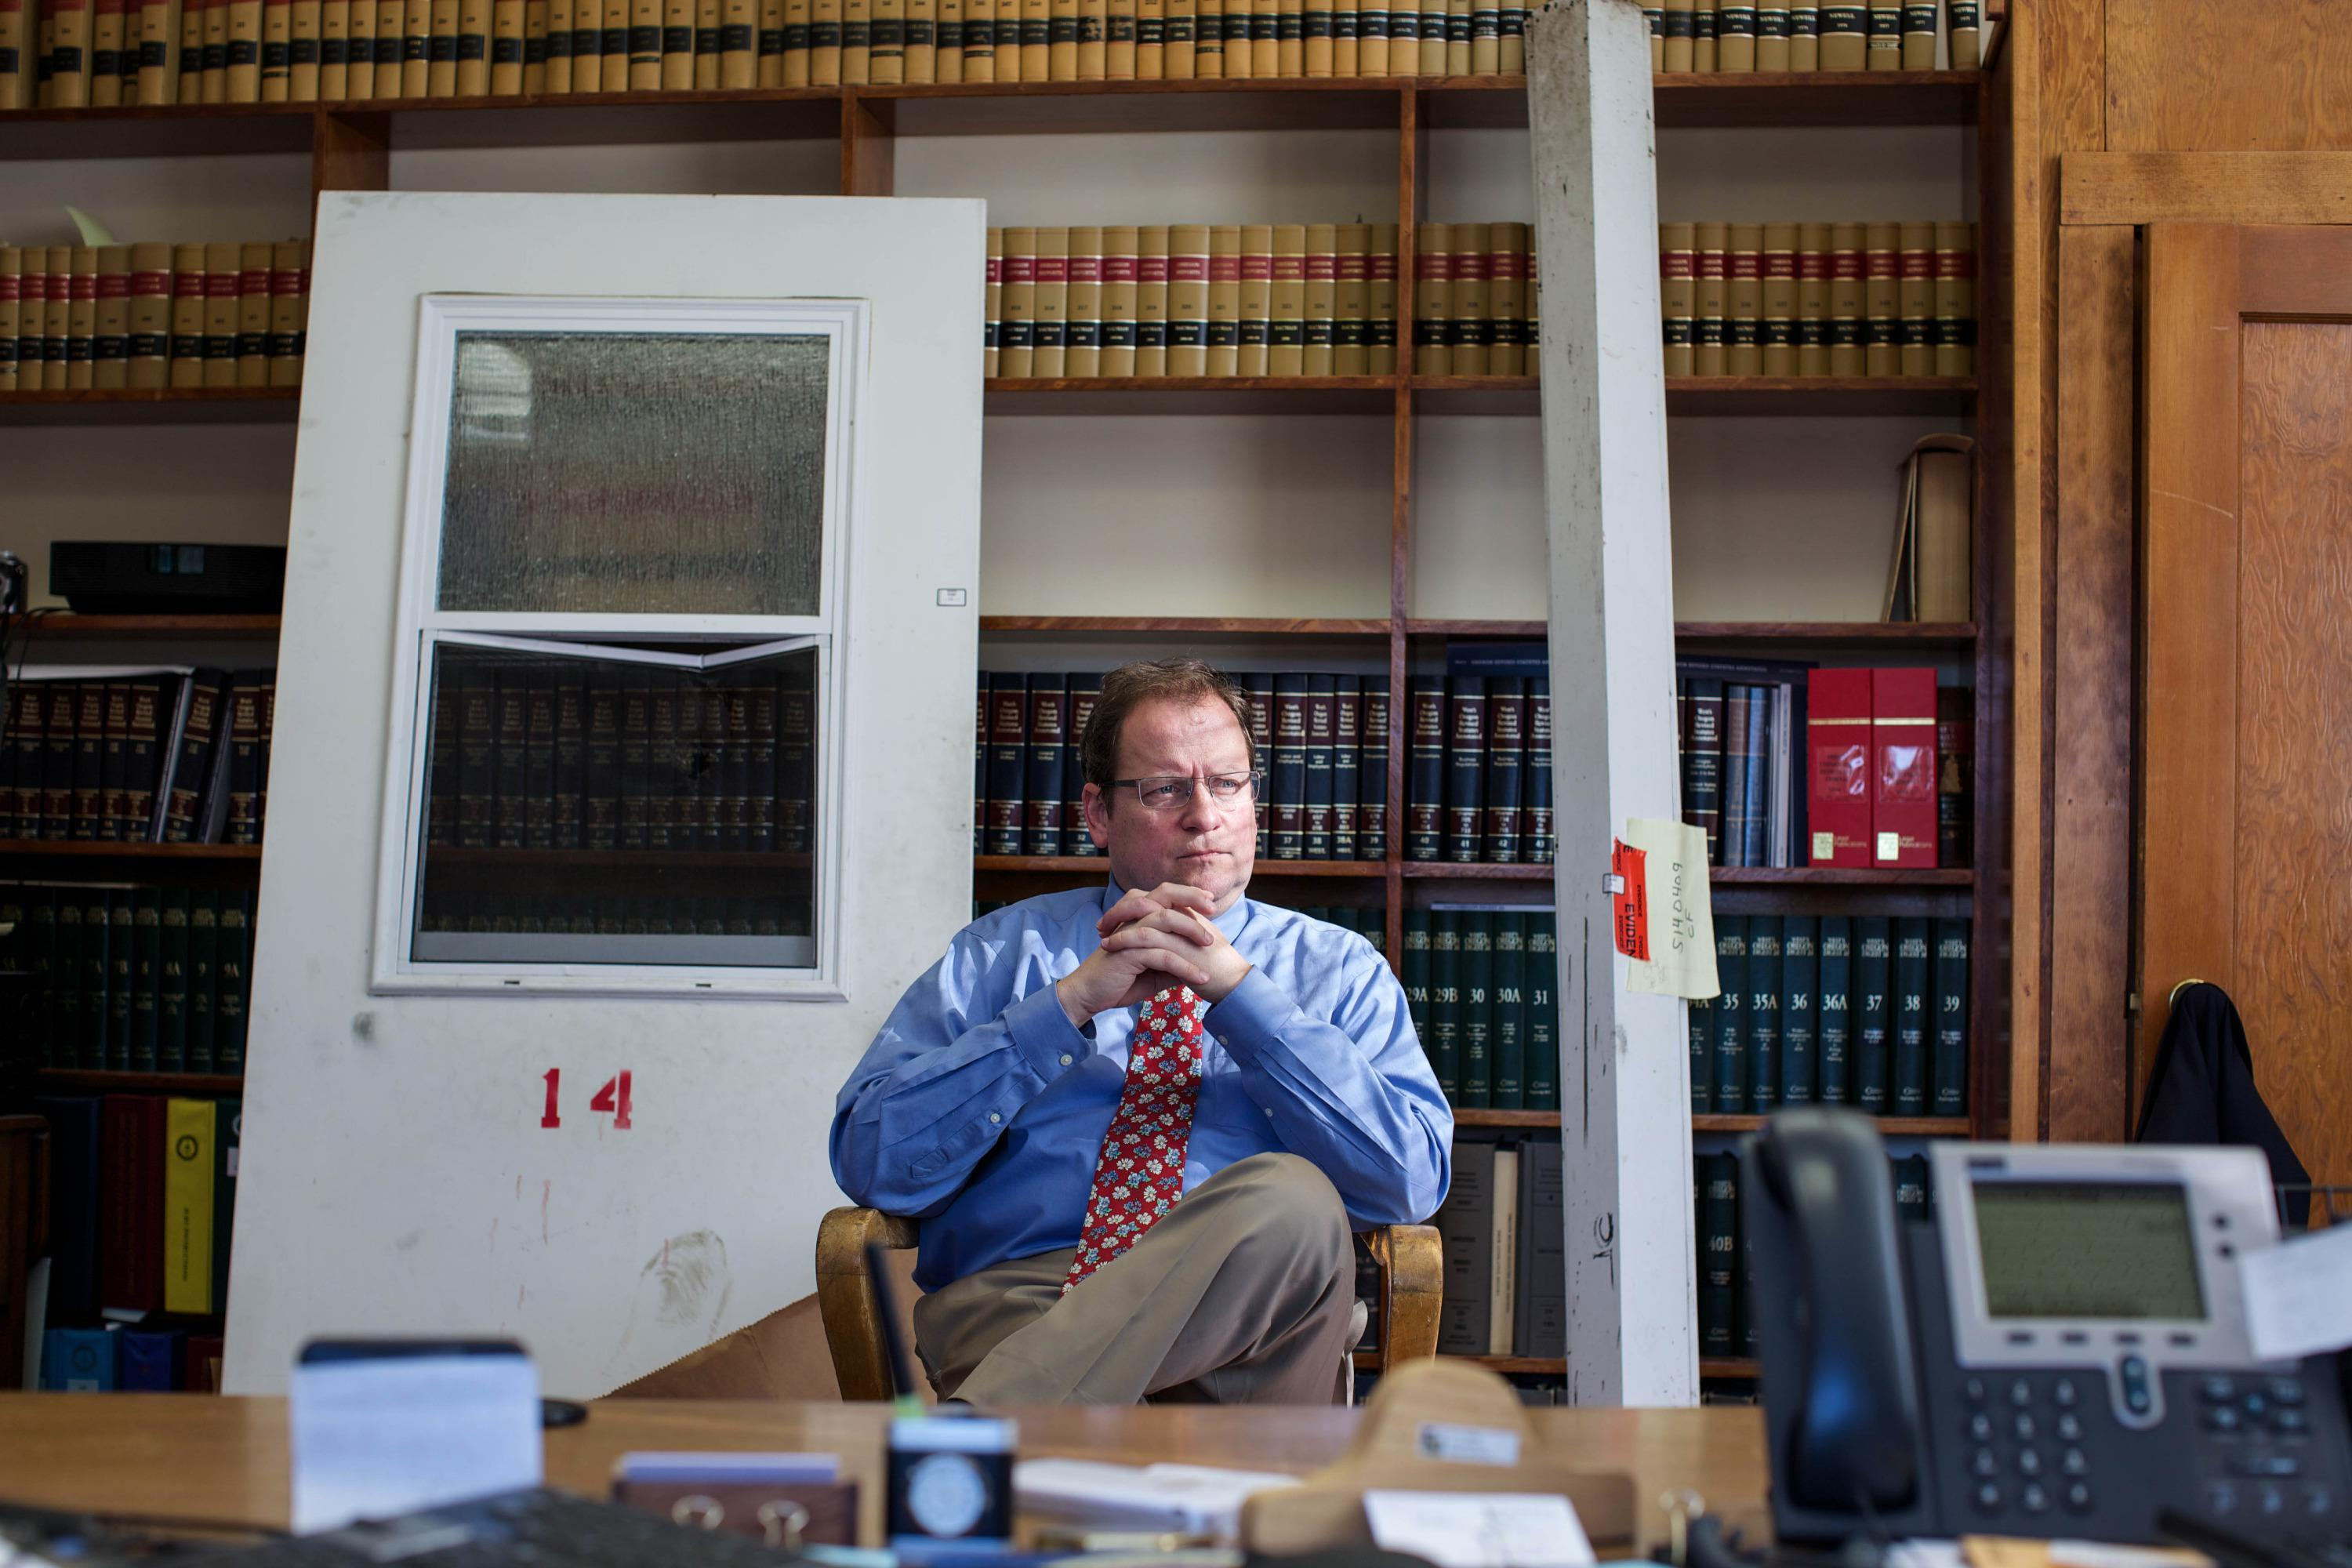 The Oregon's Disciplinary Board ruled that District Attorney Eric Nisley lied when he claimed he hadn't made Wasco County's finance director the subject of an investigation into improper loans.